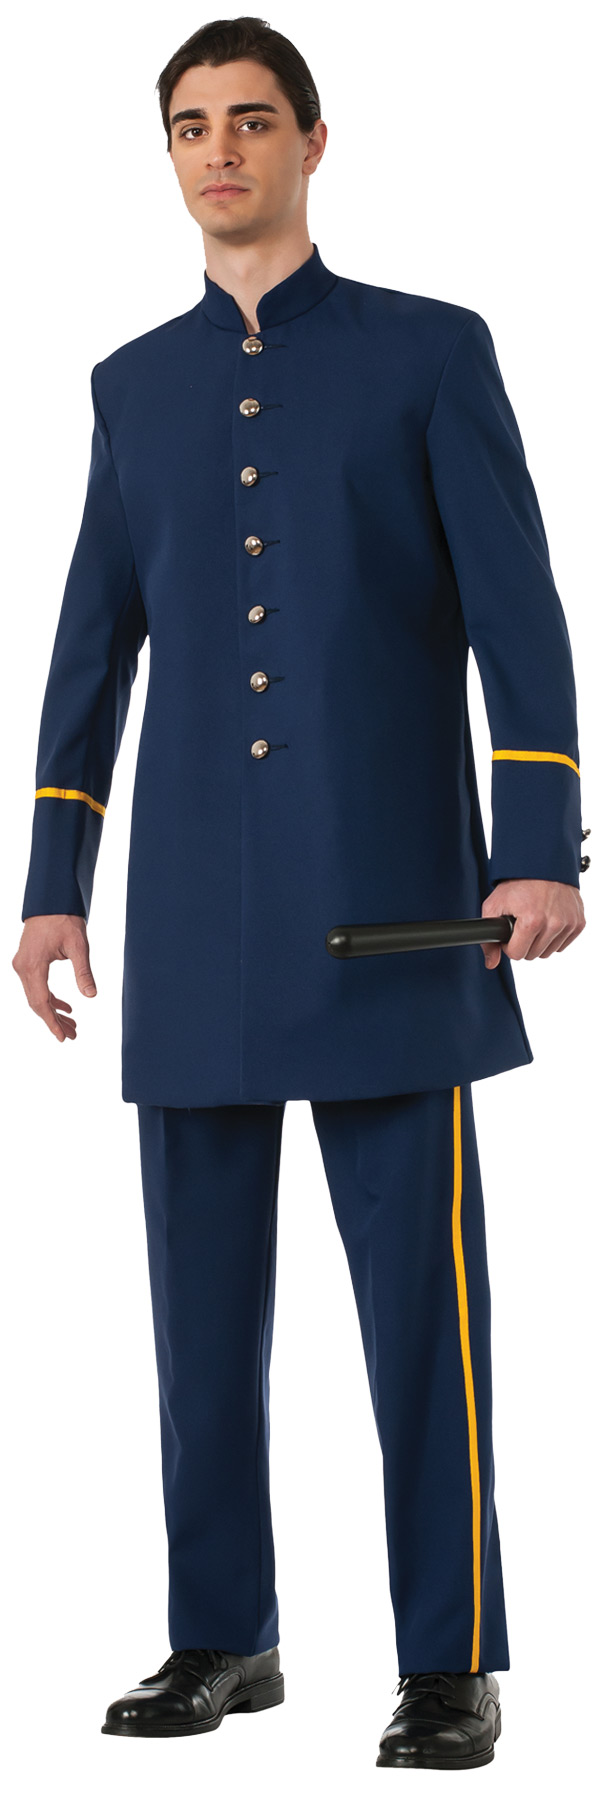 Featured Image for Men's Keystone Cop Costume